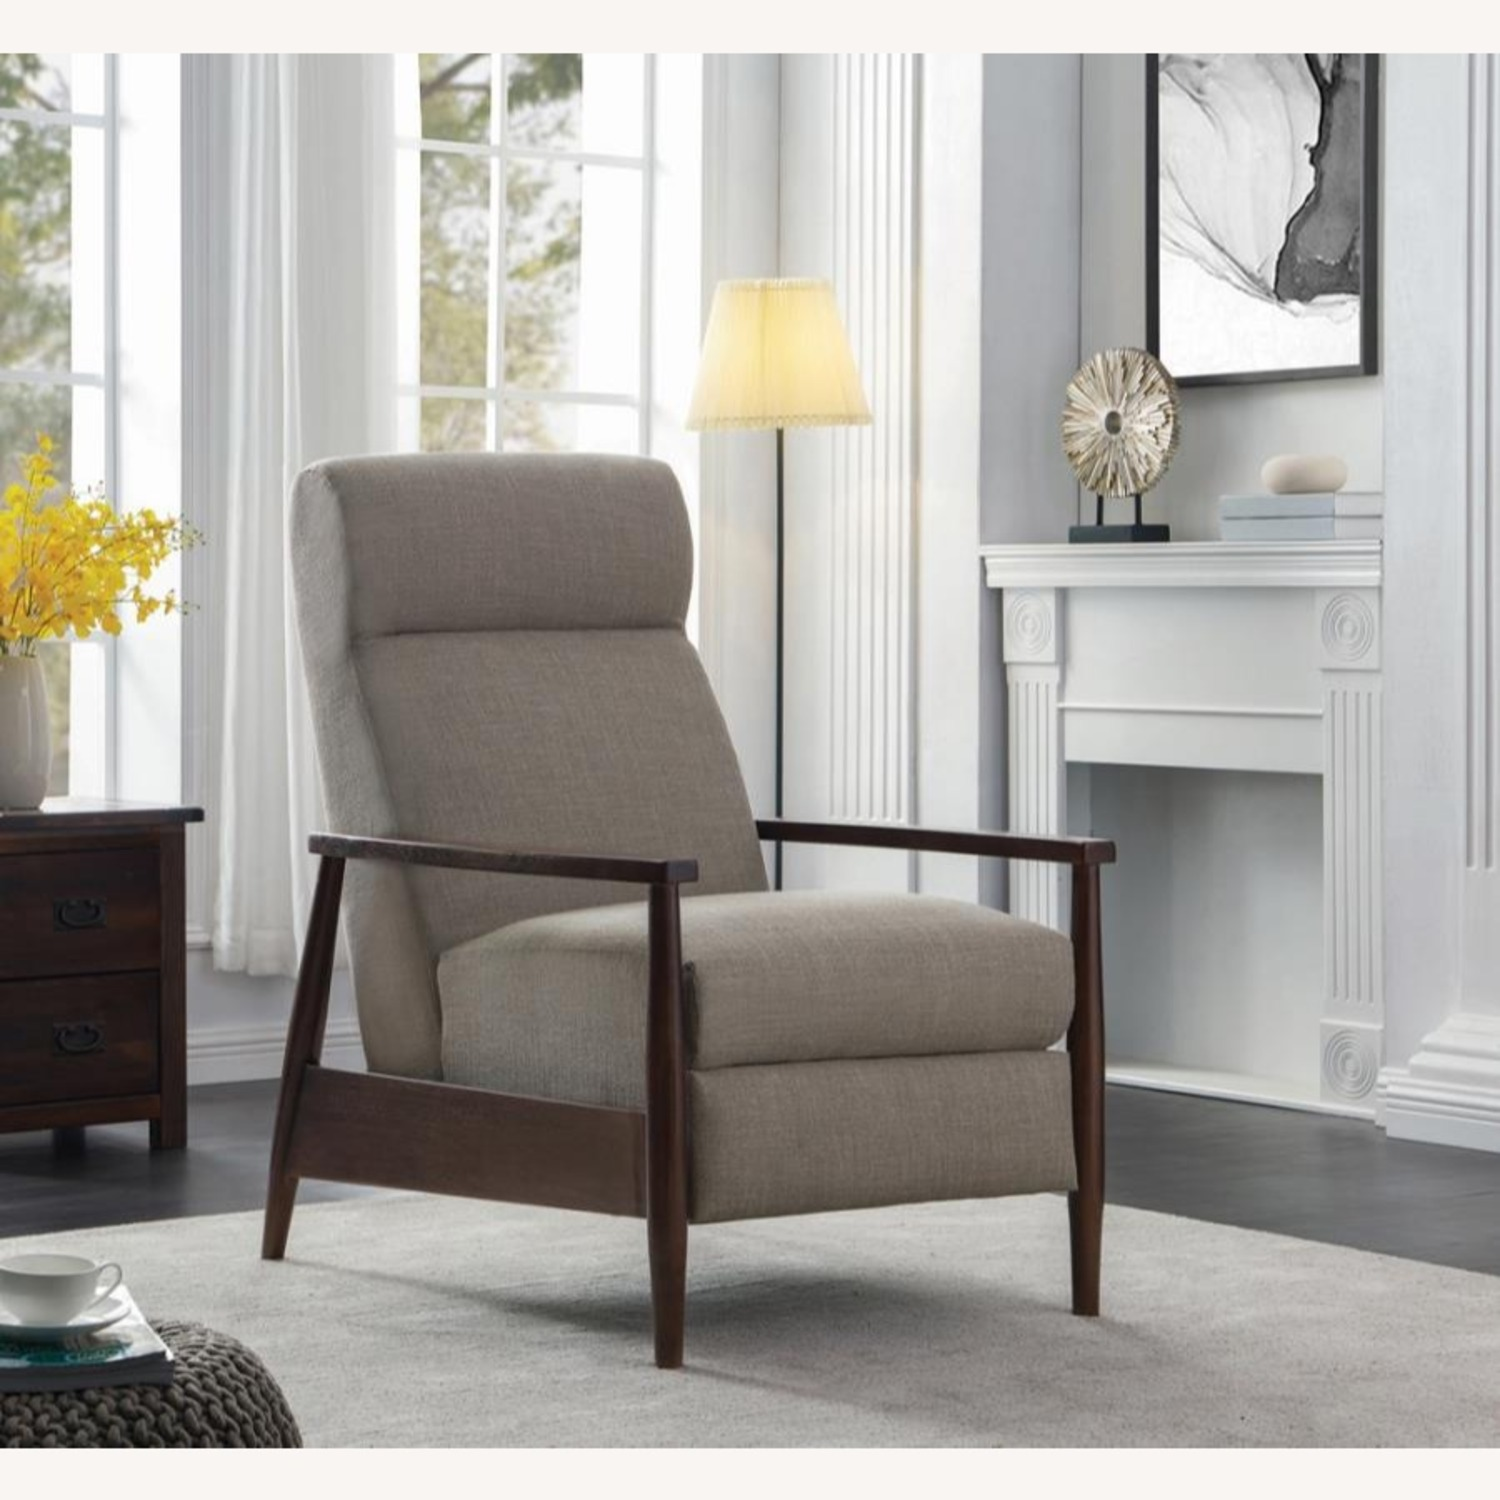 Push-Back Recliner In Cream Performance Fabric - image-6